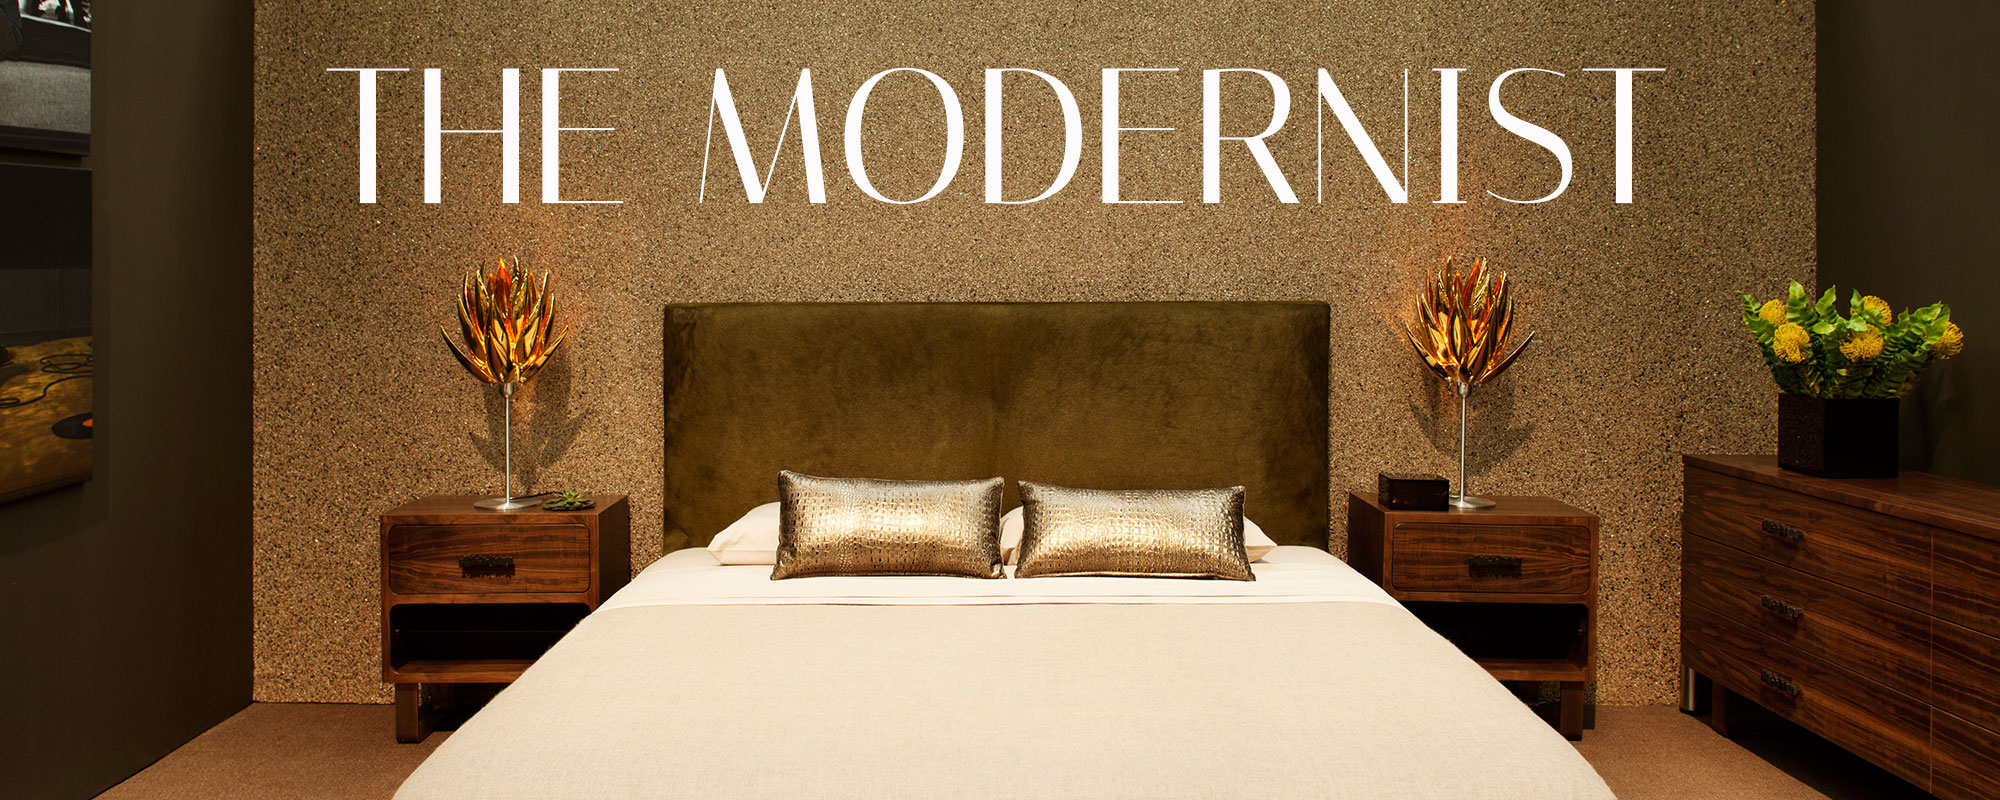 The Modernist Contemporary Luxury Furniture Lighting